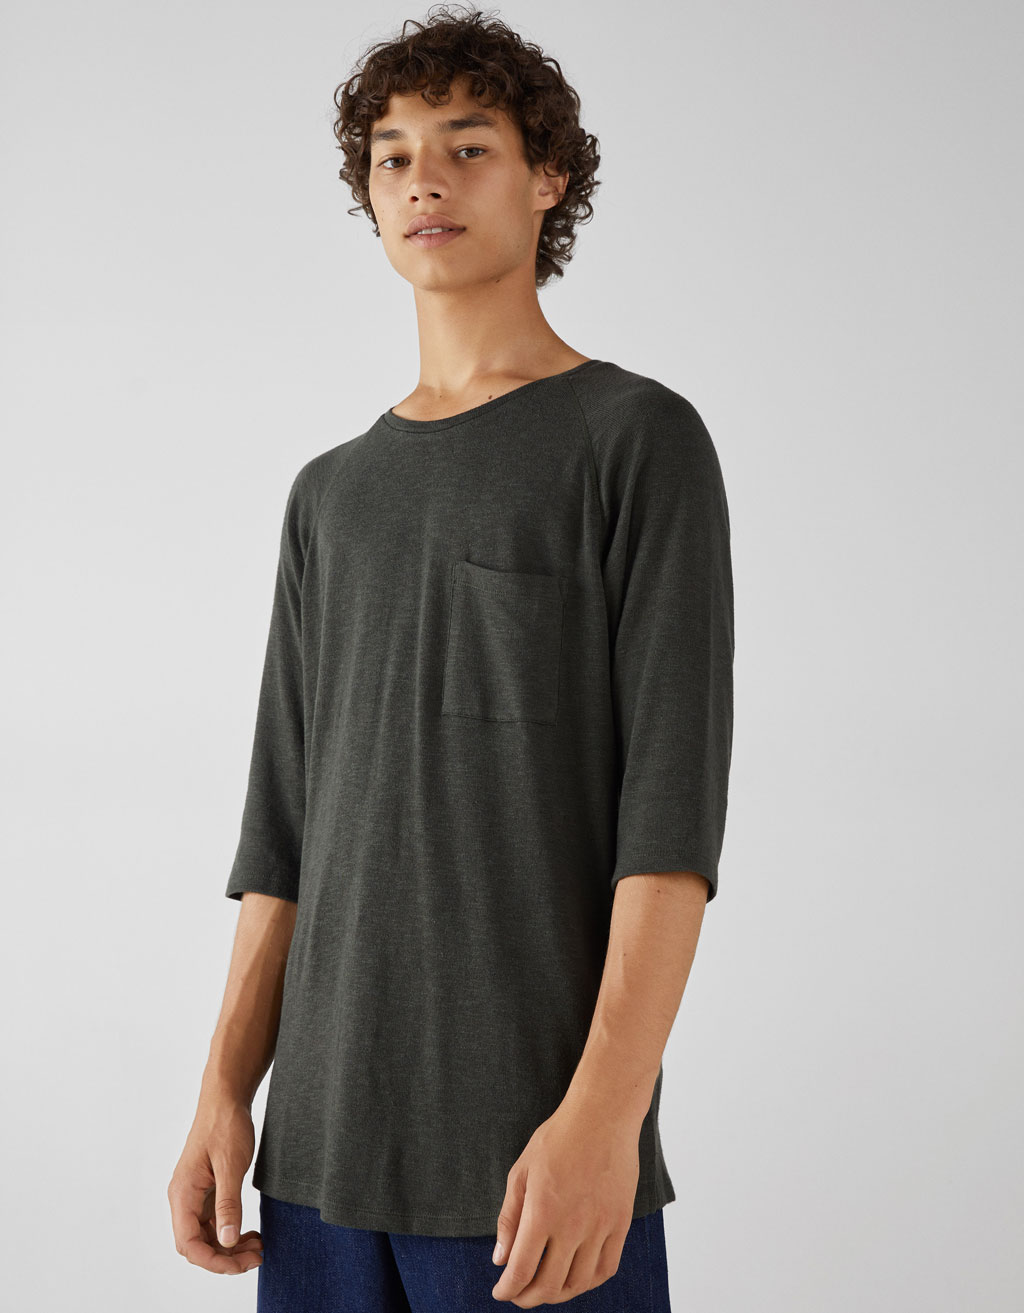 3/4 sleeve flecked T-shirt